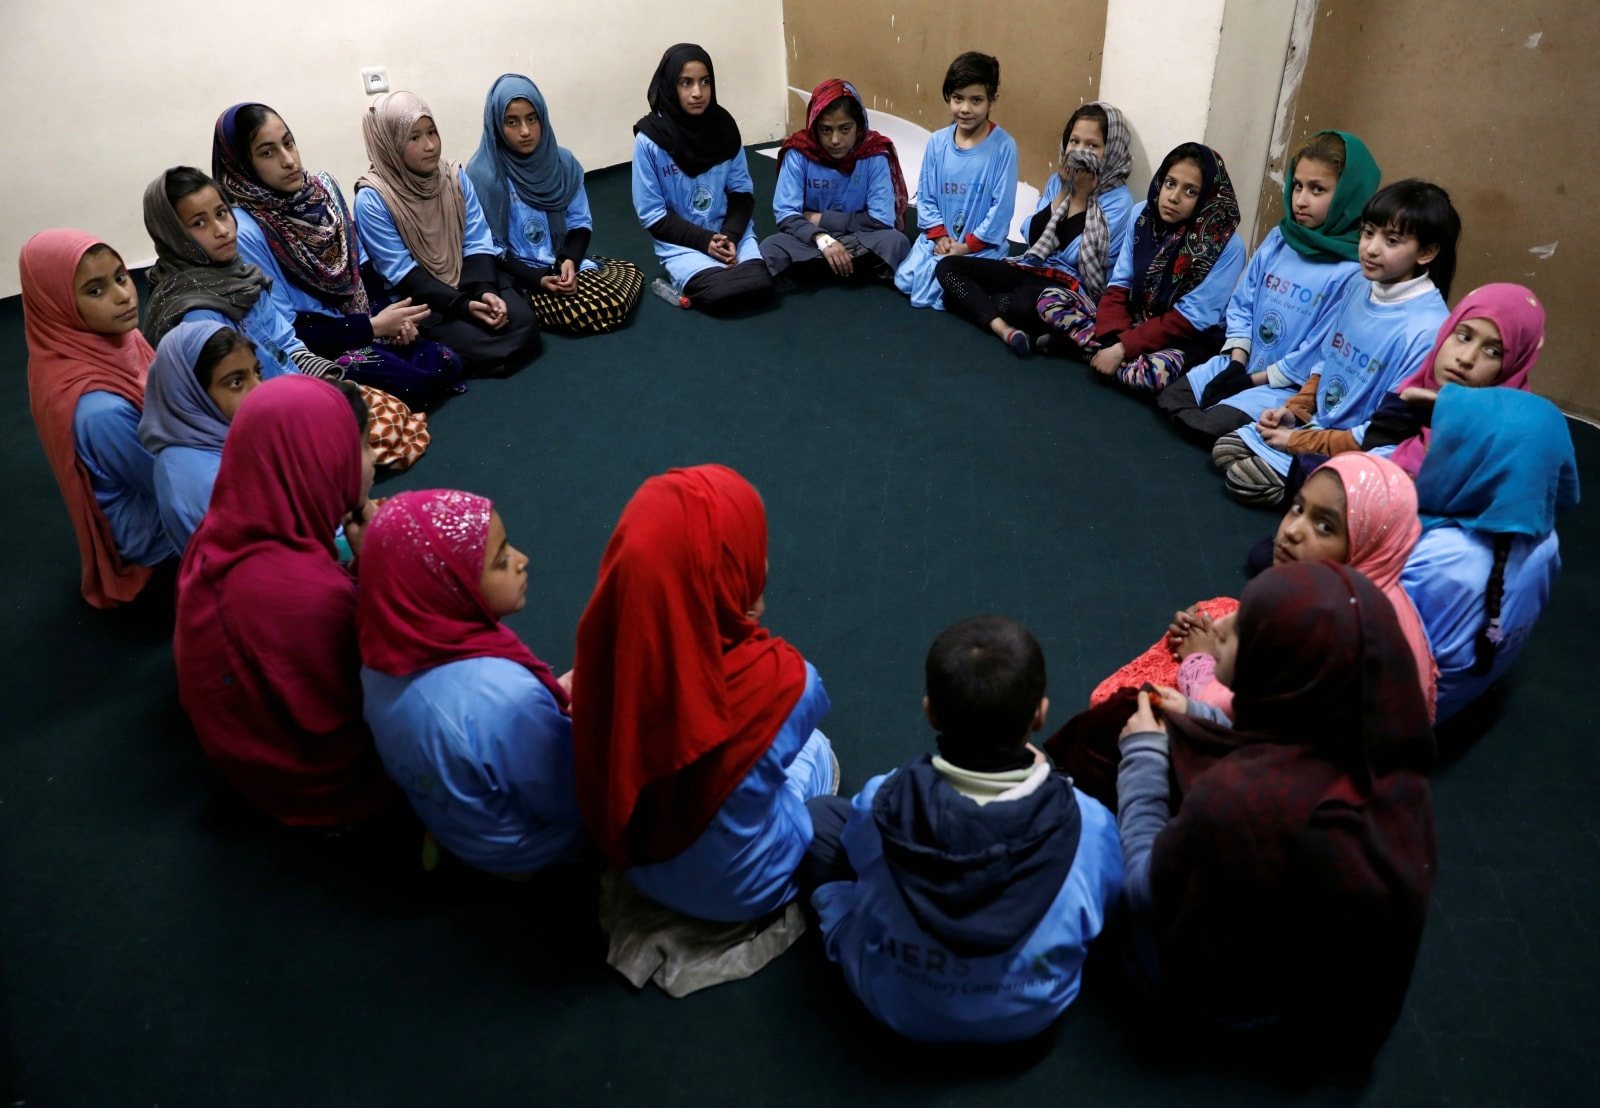 Afghan girls attend a class at the Aschiana center in Kabul, Afghanistan March 5, 2019. REUTERS/Mohammad Ismail